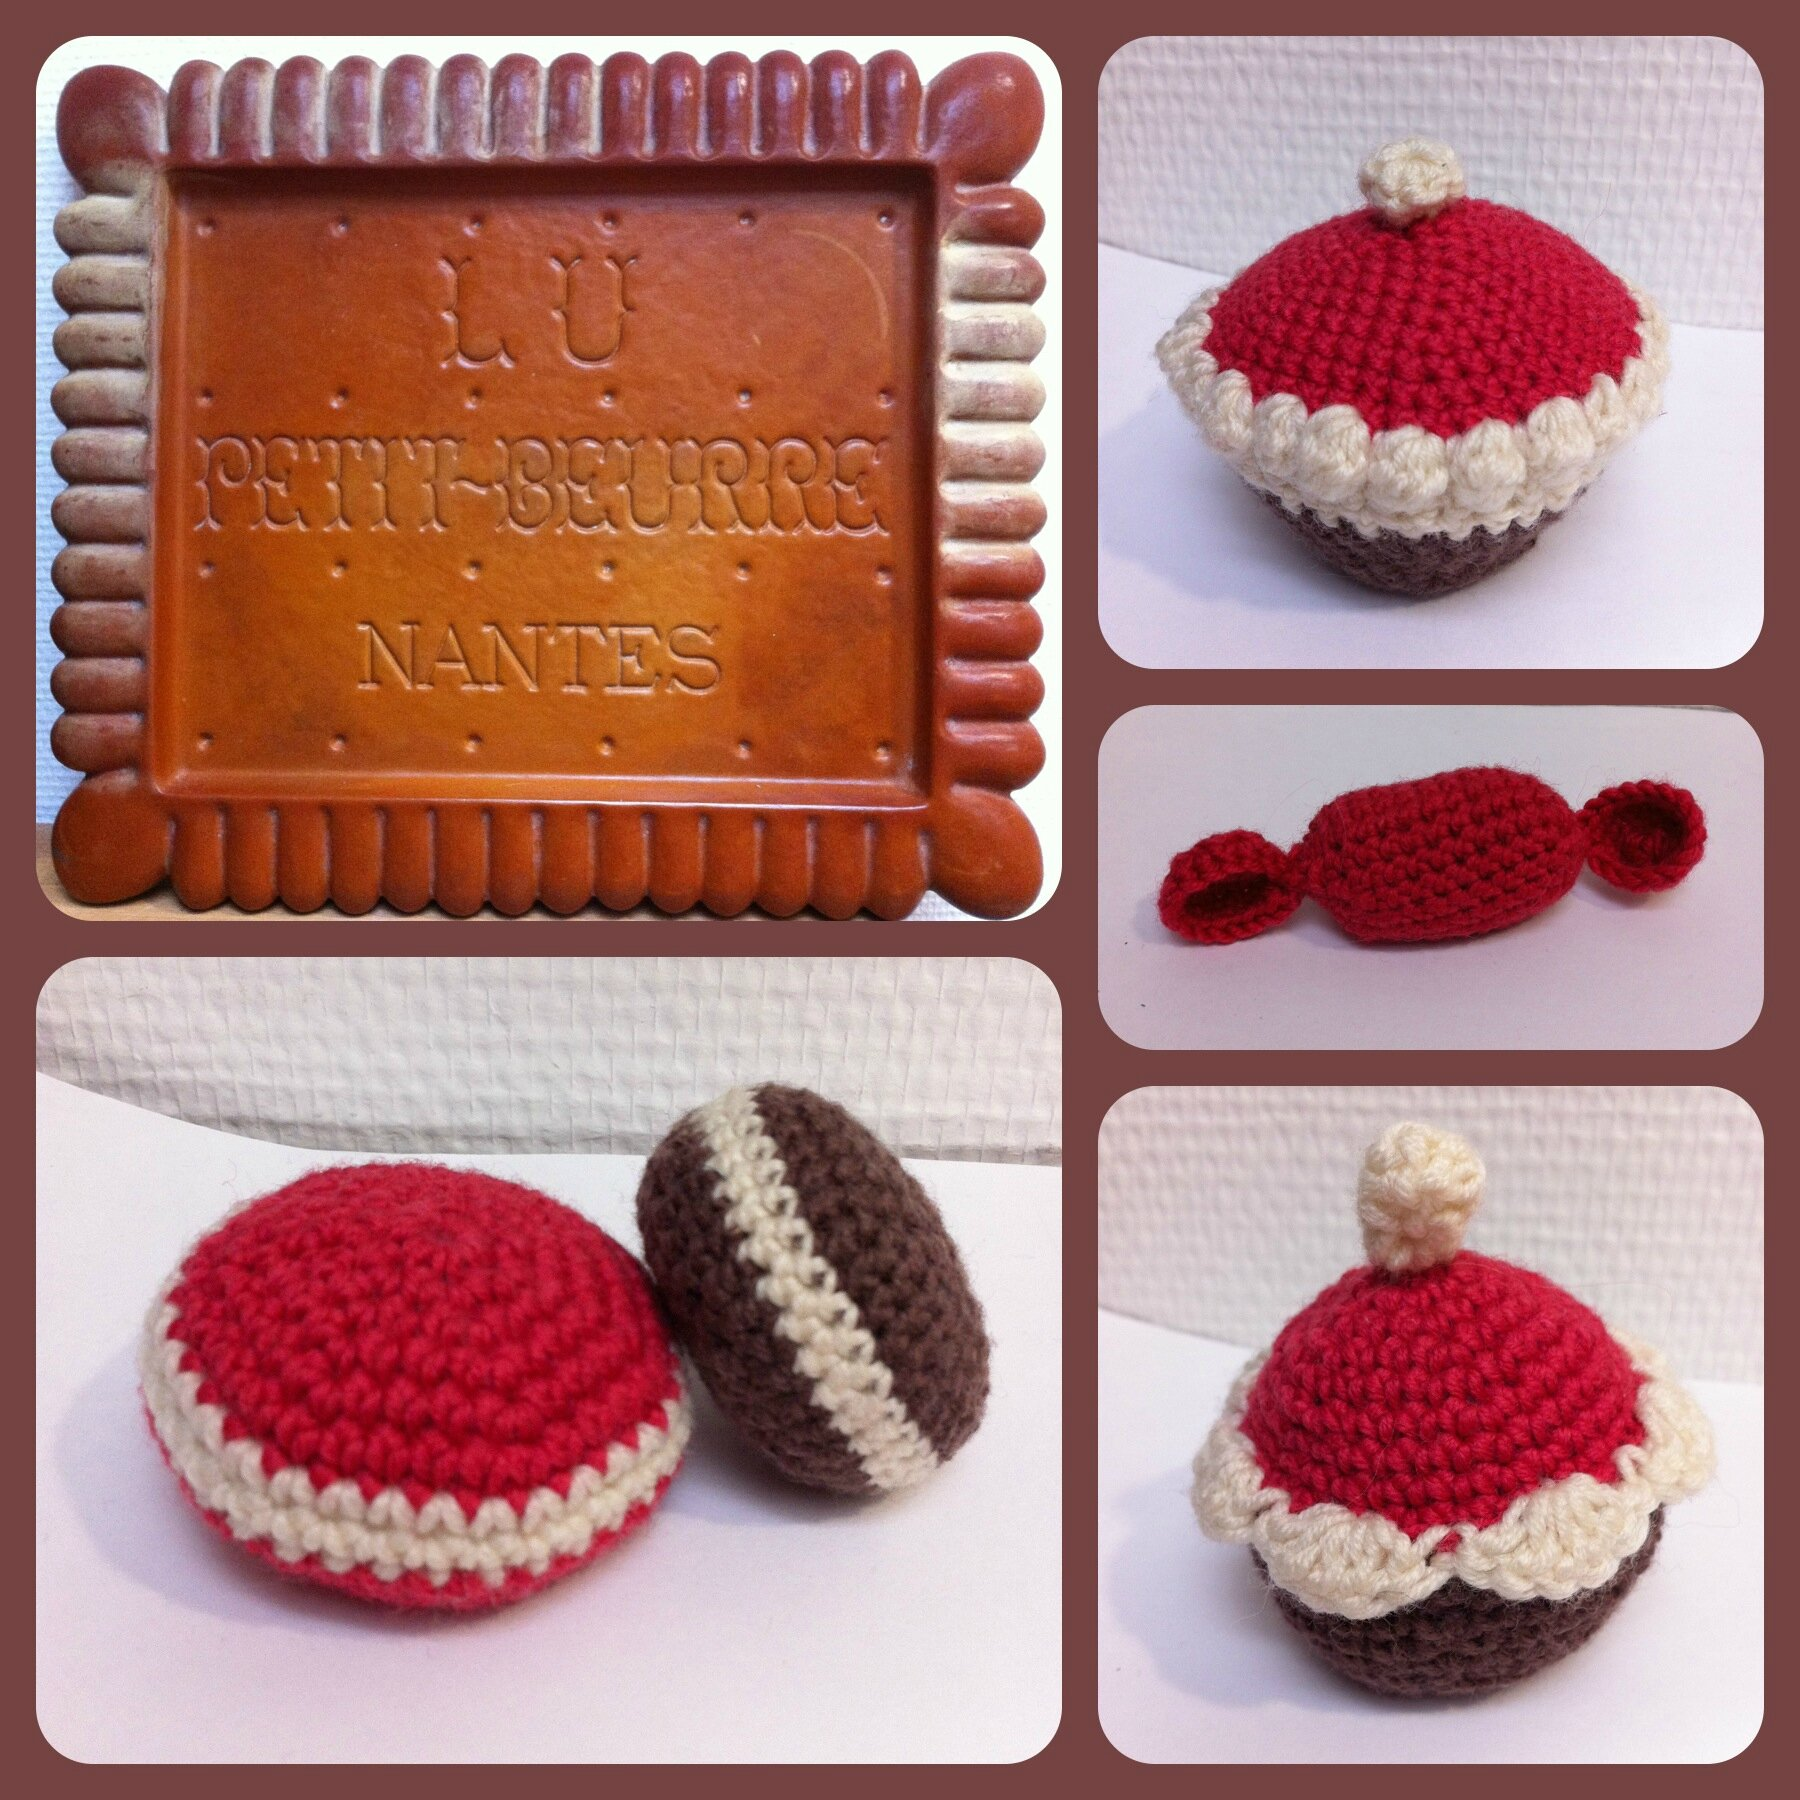 Sucreries crochet